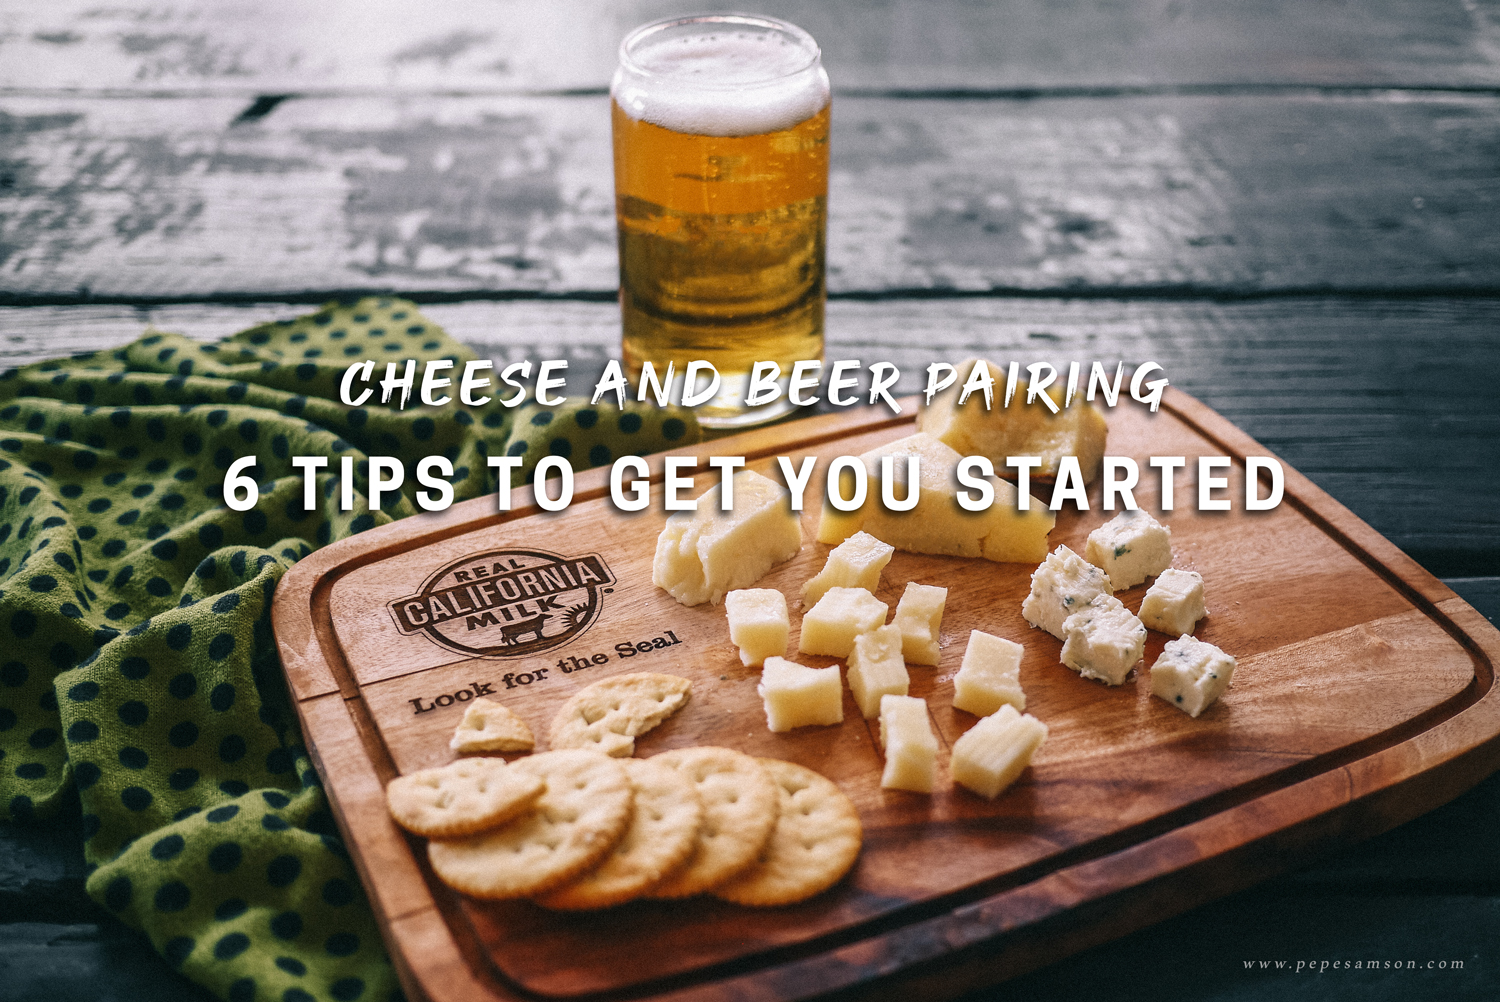 Cheese and Beer Pairing: 6 Tips to Get You Started